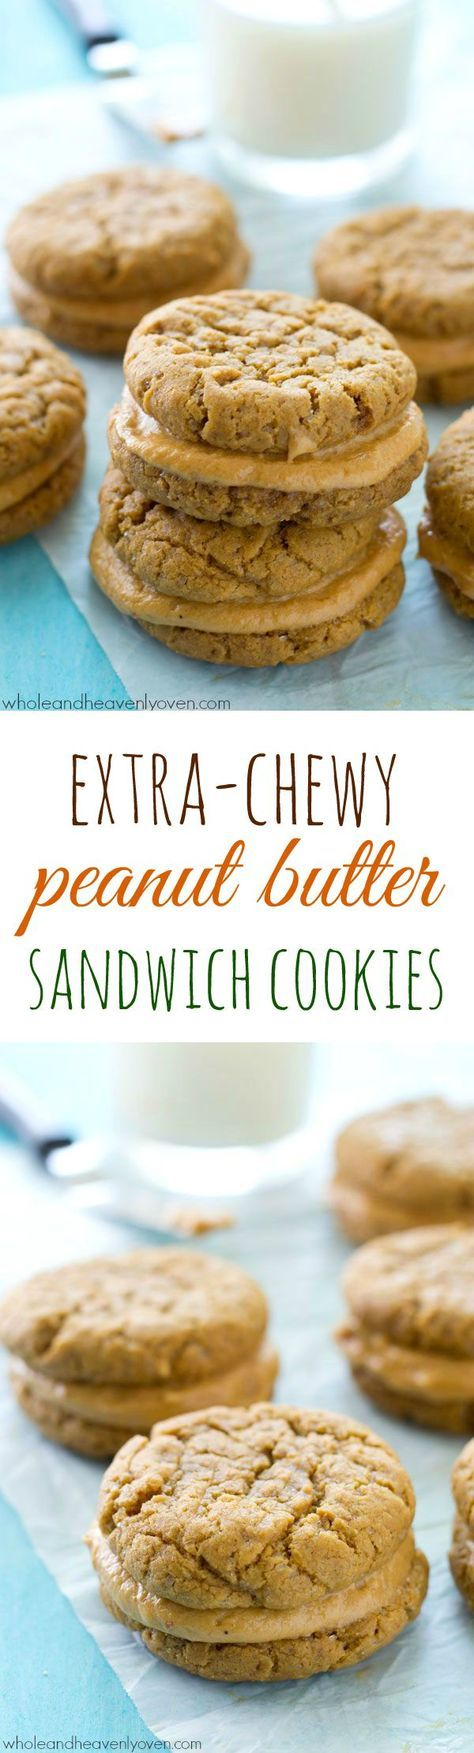 Extra-Chewy Peanut Butter Sandwich Cookies | Recipe ...